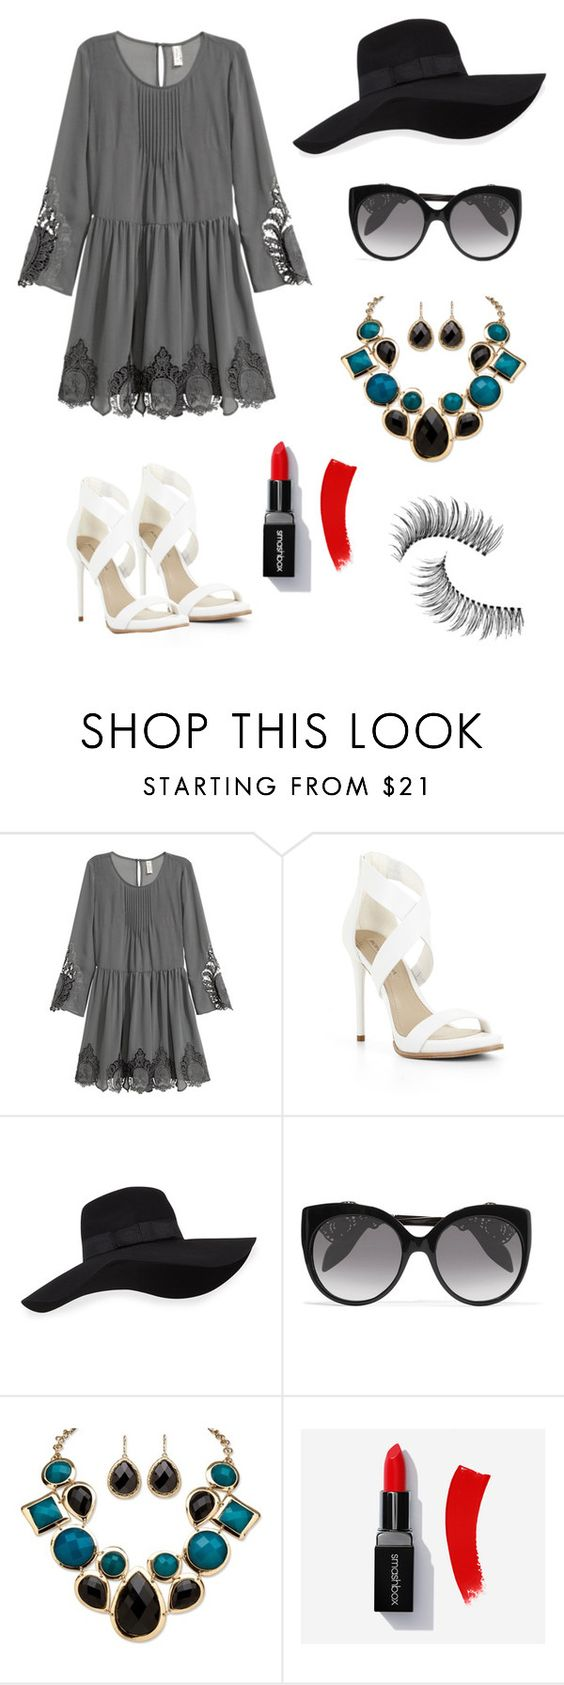 """""""Sem título #2441"""" by mariana-mester-vianna ❤ liked on Polyvore featuring H&M, BCBGMAXAZRIA, San Diego Hat Co., Alexander McQueen, Palm Beach Jewelry and Trish McEvoy"""